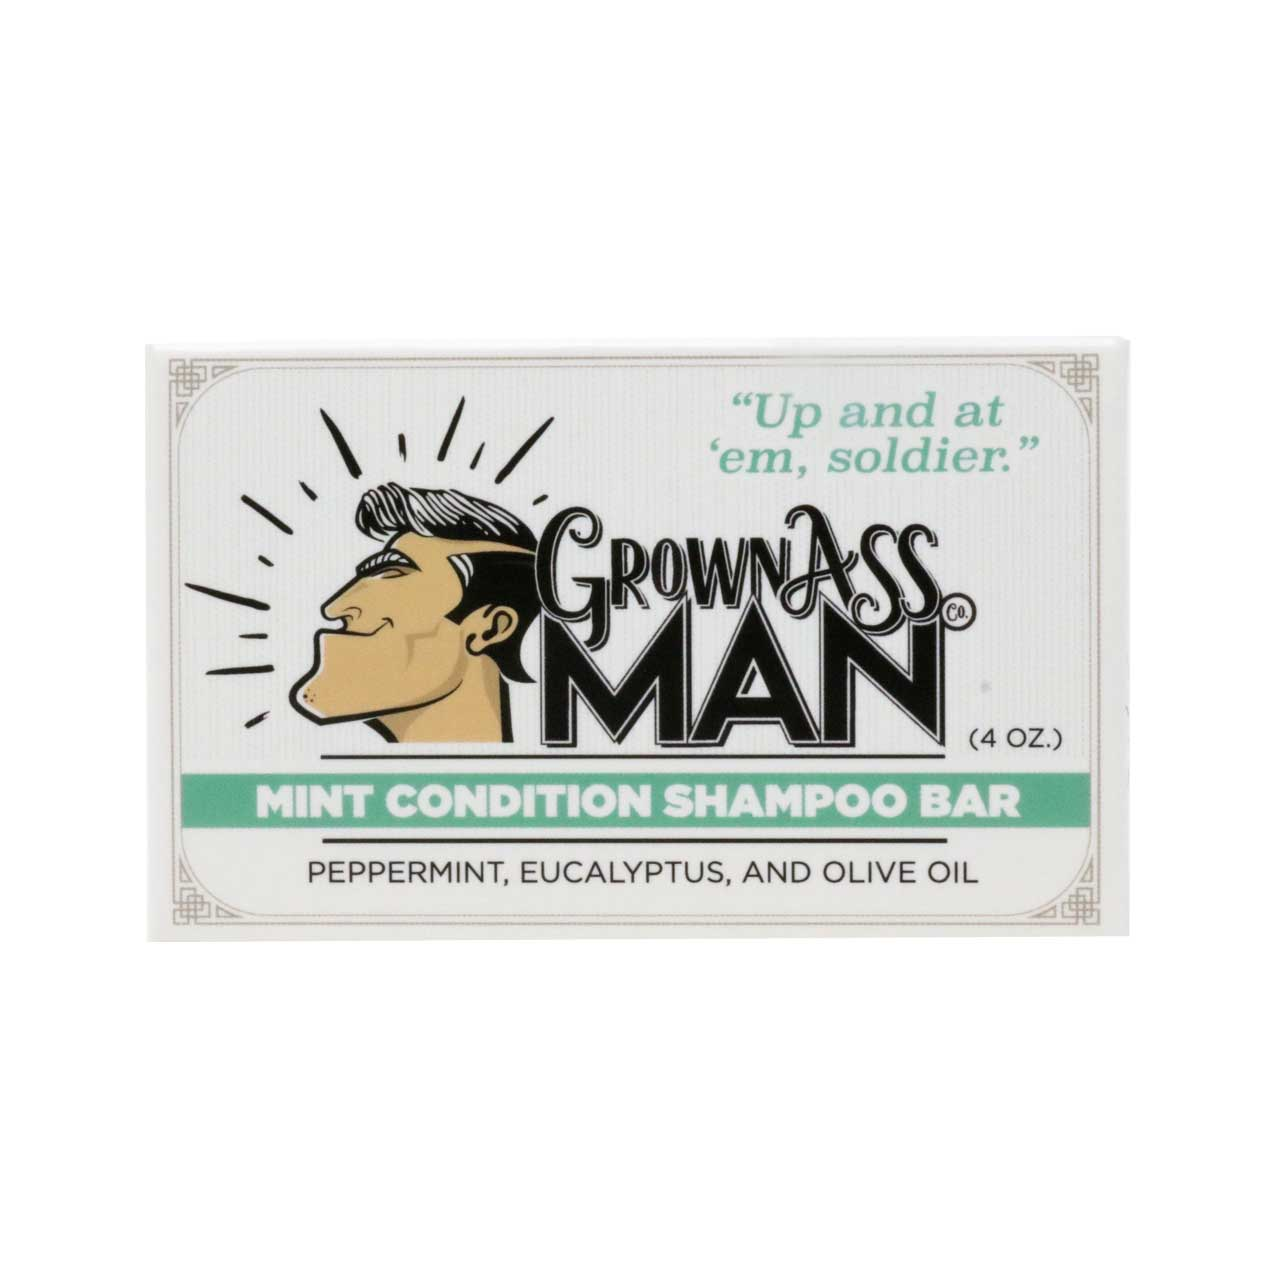 Mint Condition Shampoo Bar - 1 Pack